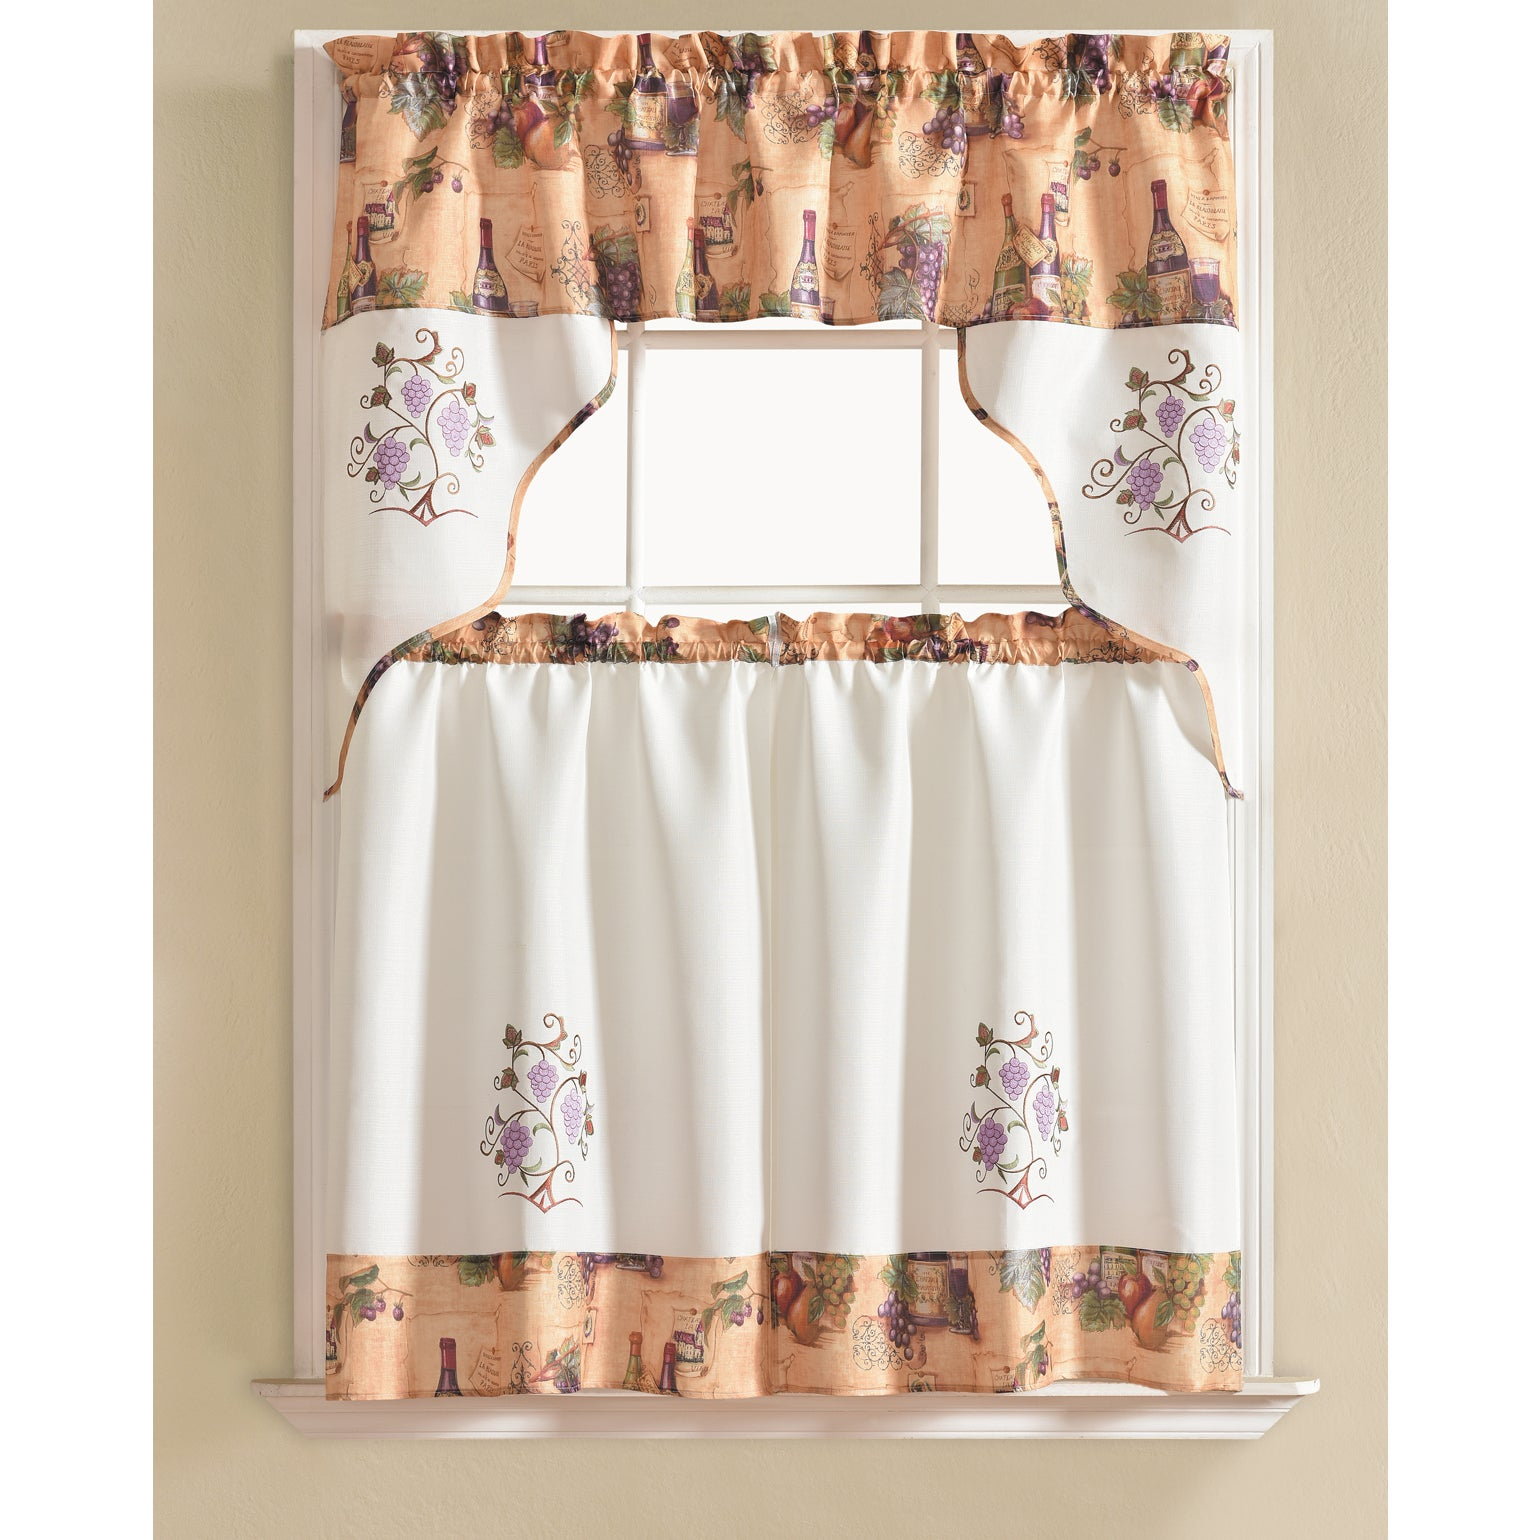 Rt Designers Collection Urban Embroidered Tier And Valance Kitchen Curtain  Tier Set With Delicious Apples Kitchen Curtain Tier And Valance Sets (Gallery 3 of 20)